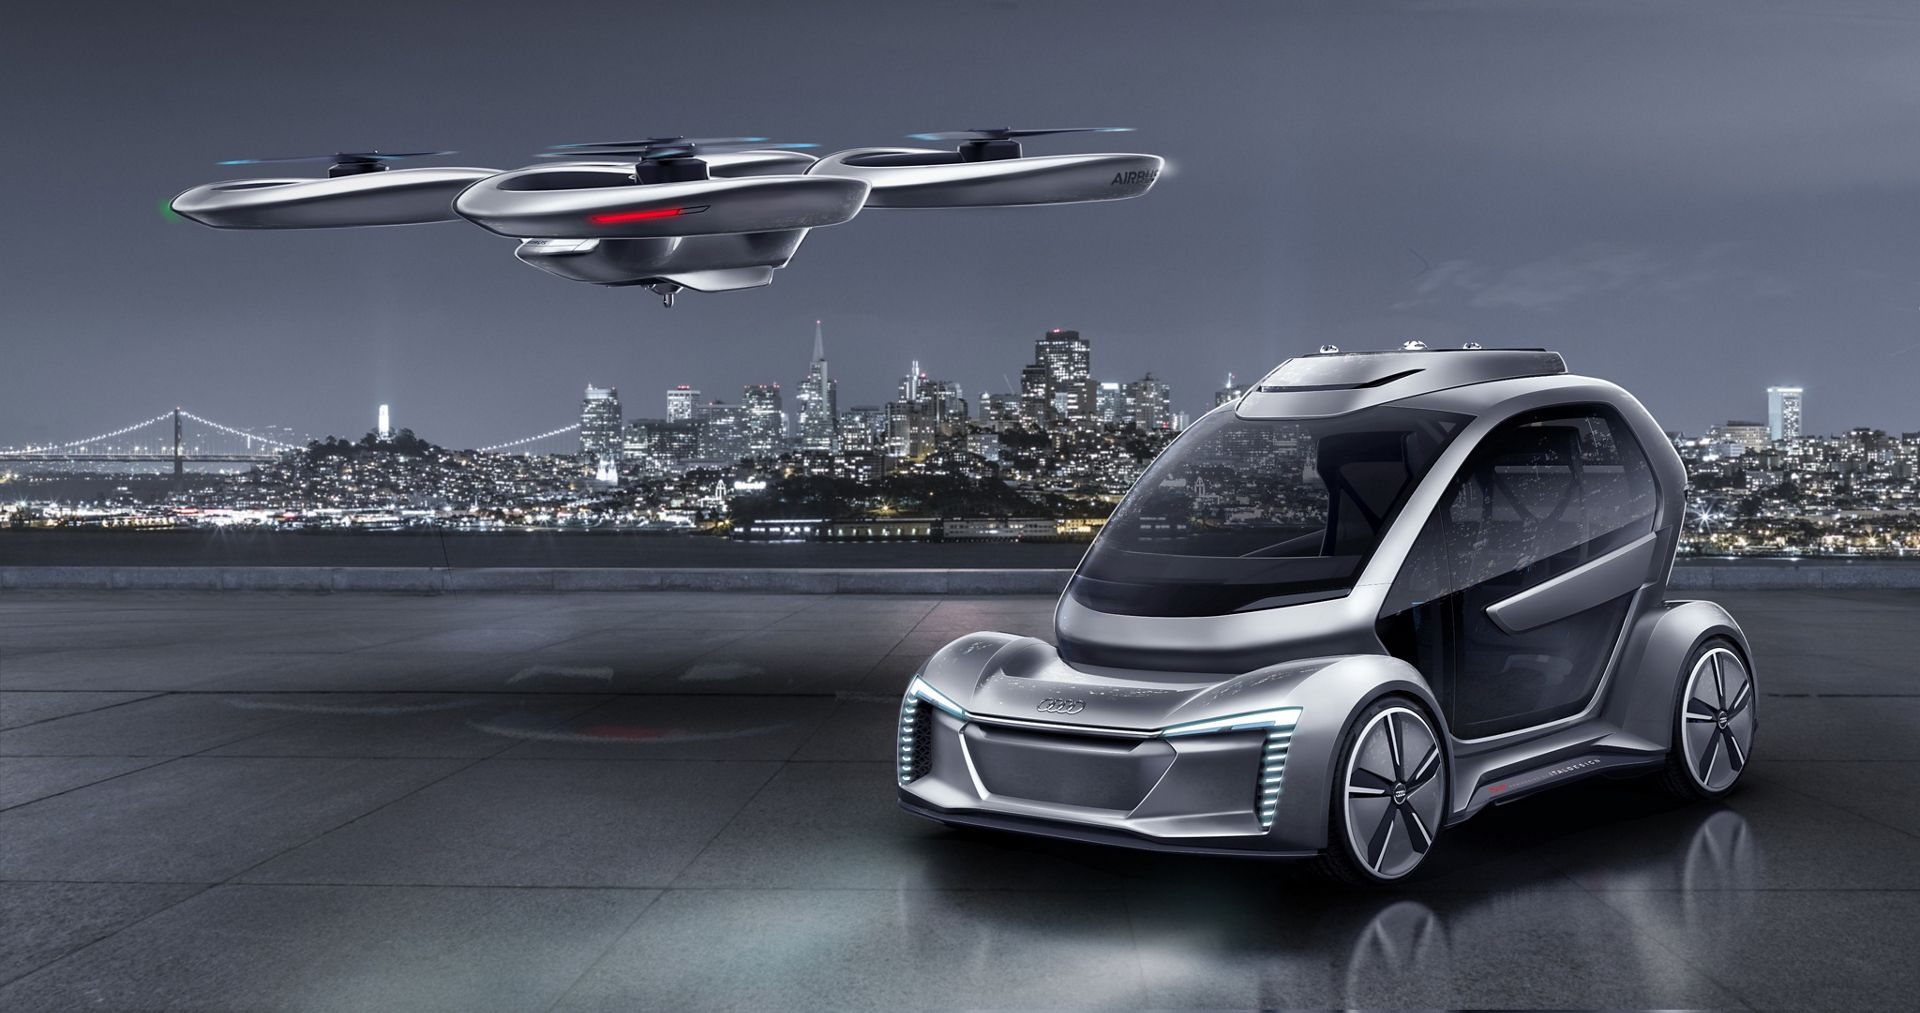 Airbus and Audi partner for urban mobility services